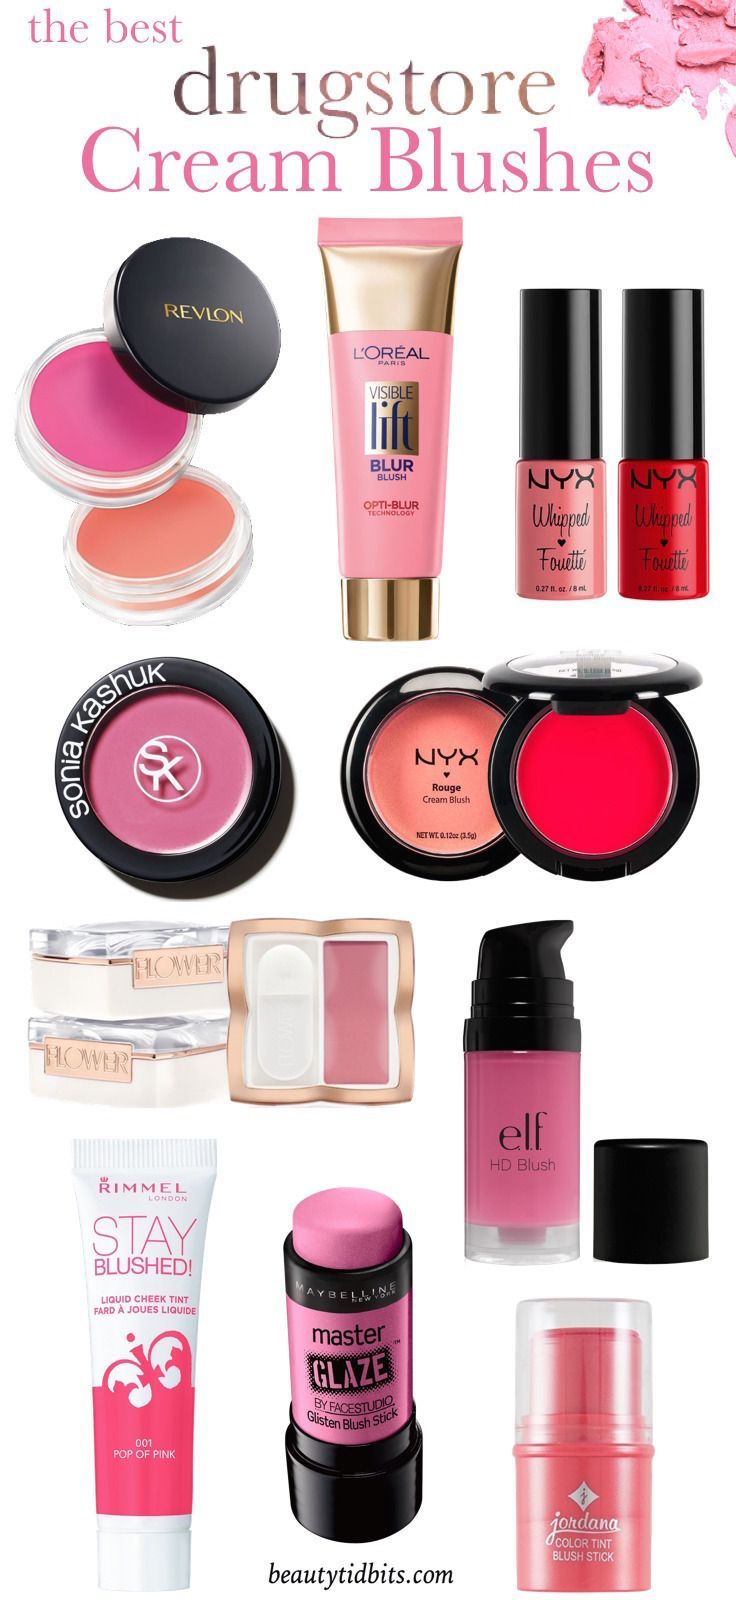 Find the Best Cream Blush for Your SkinTone